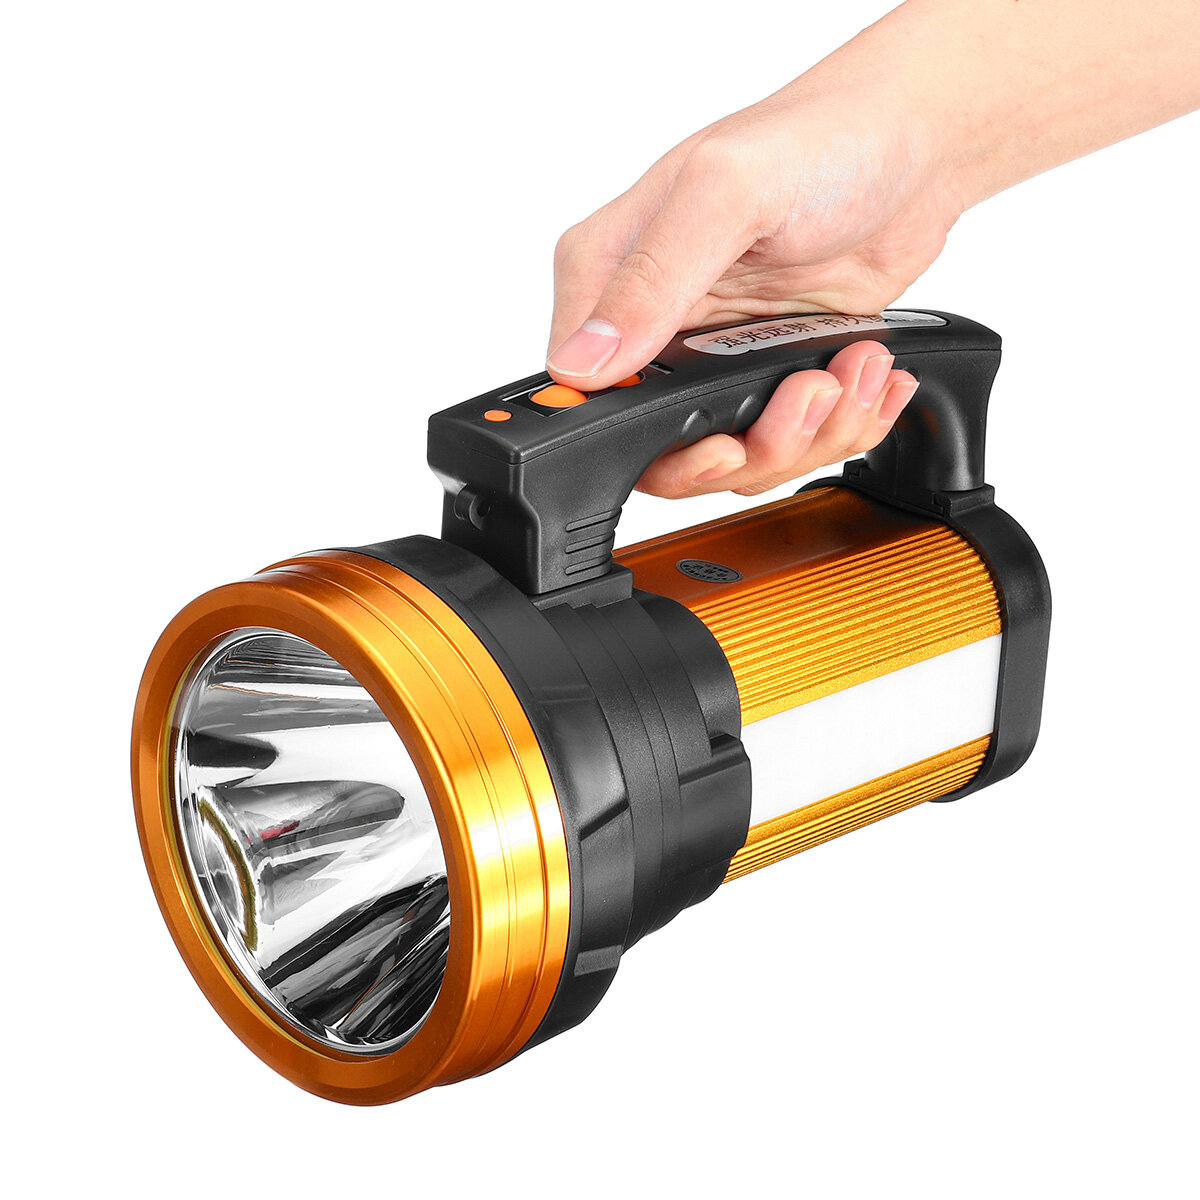 500W 3000LM 1000m Range LED USB Work Light Waterproof Hand Searchlight Flashlight Lamp Torch Emergency Lantern Outdoor Camping